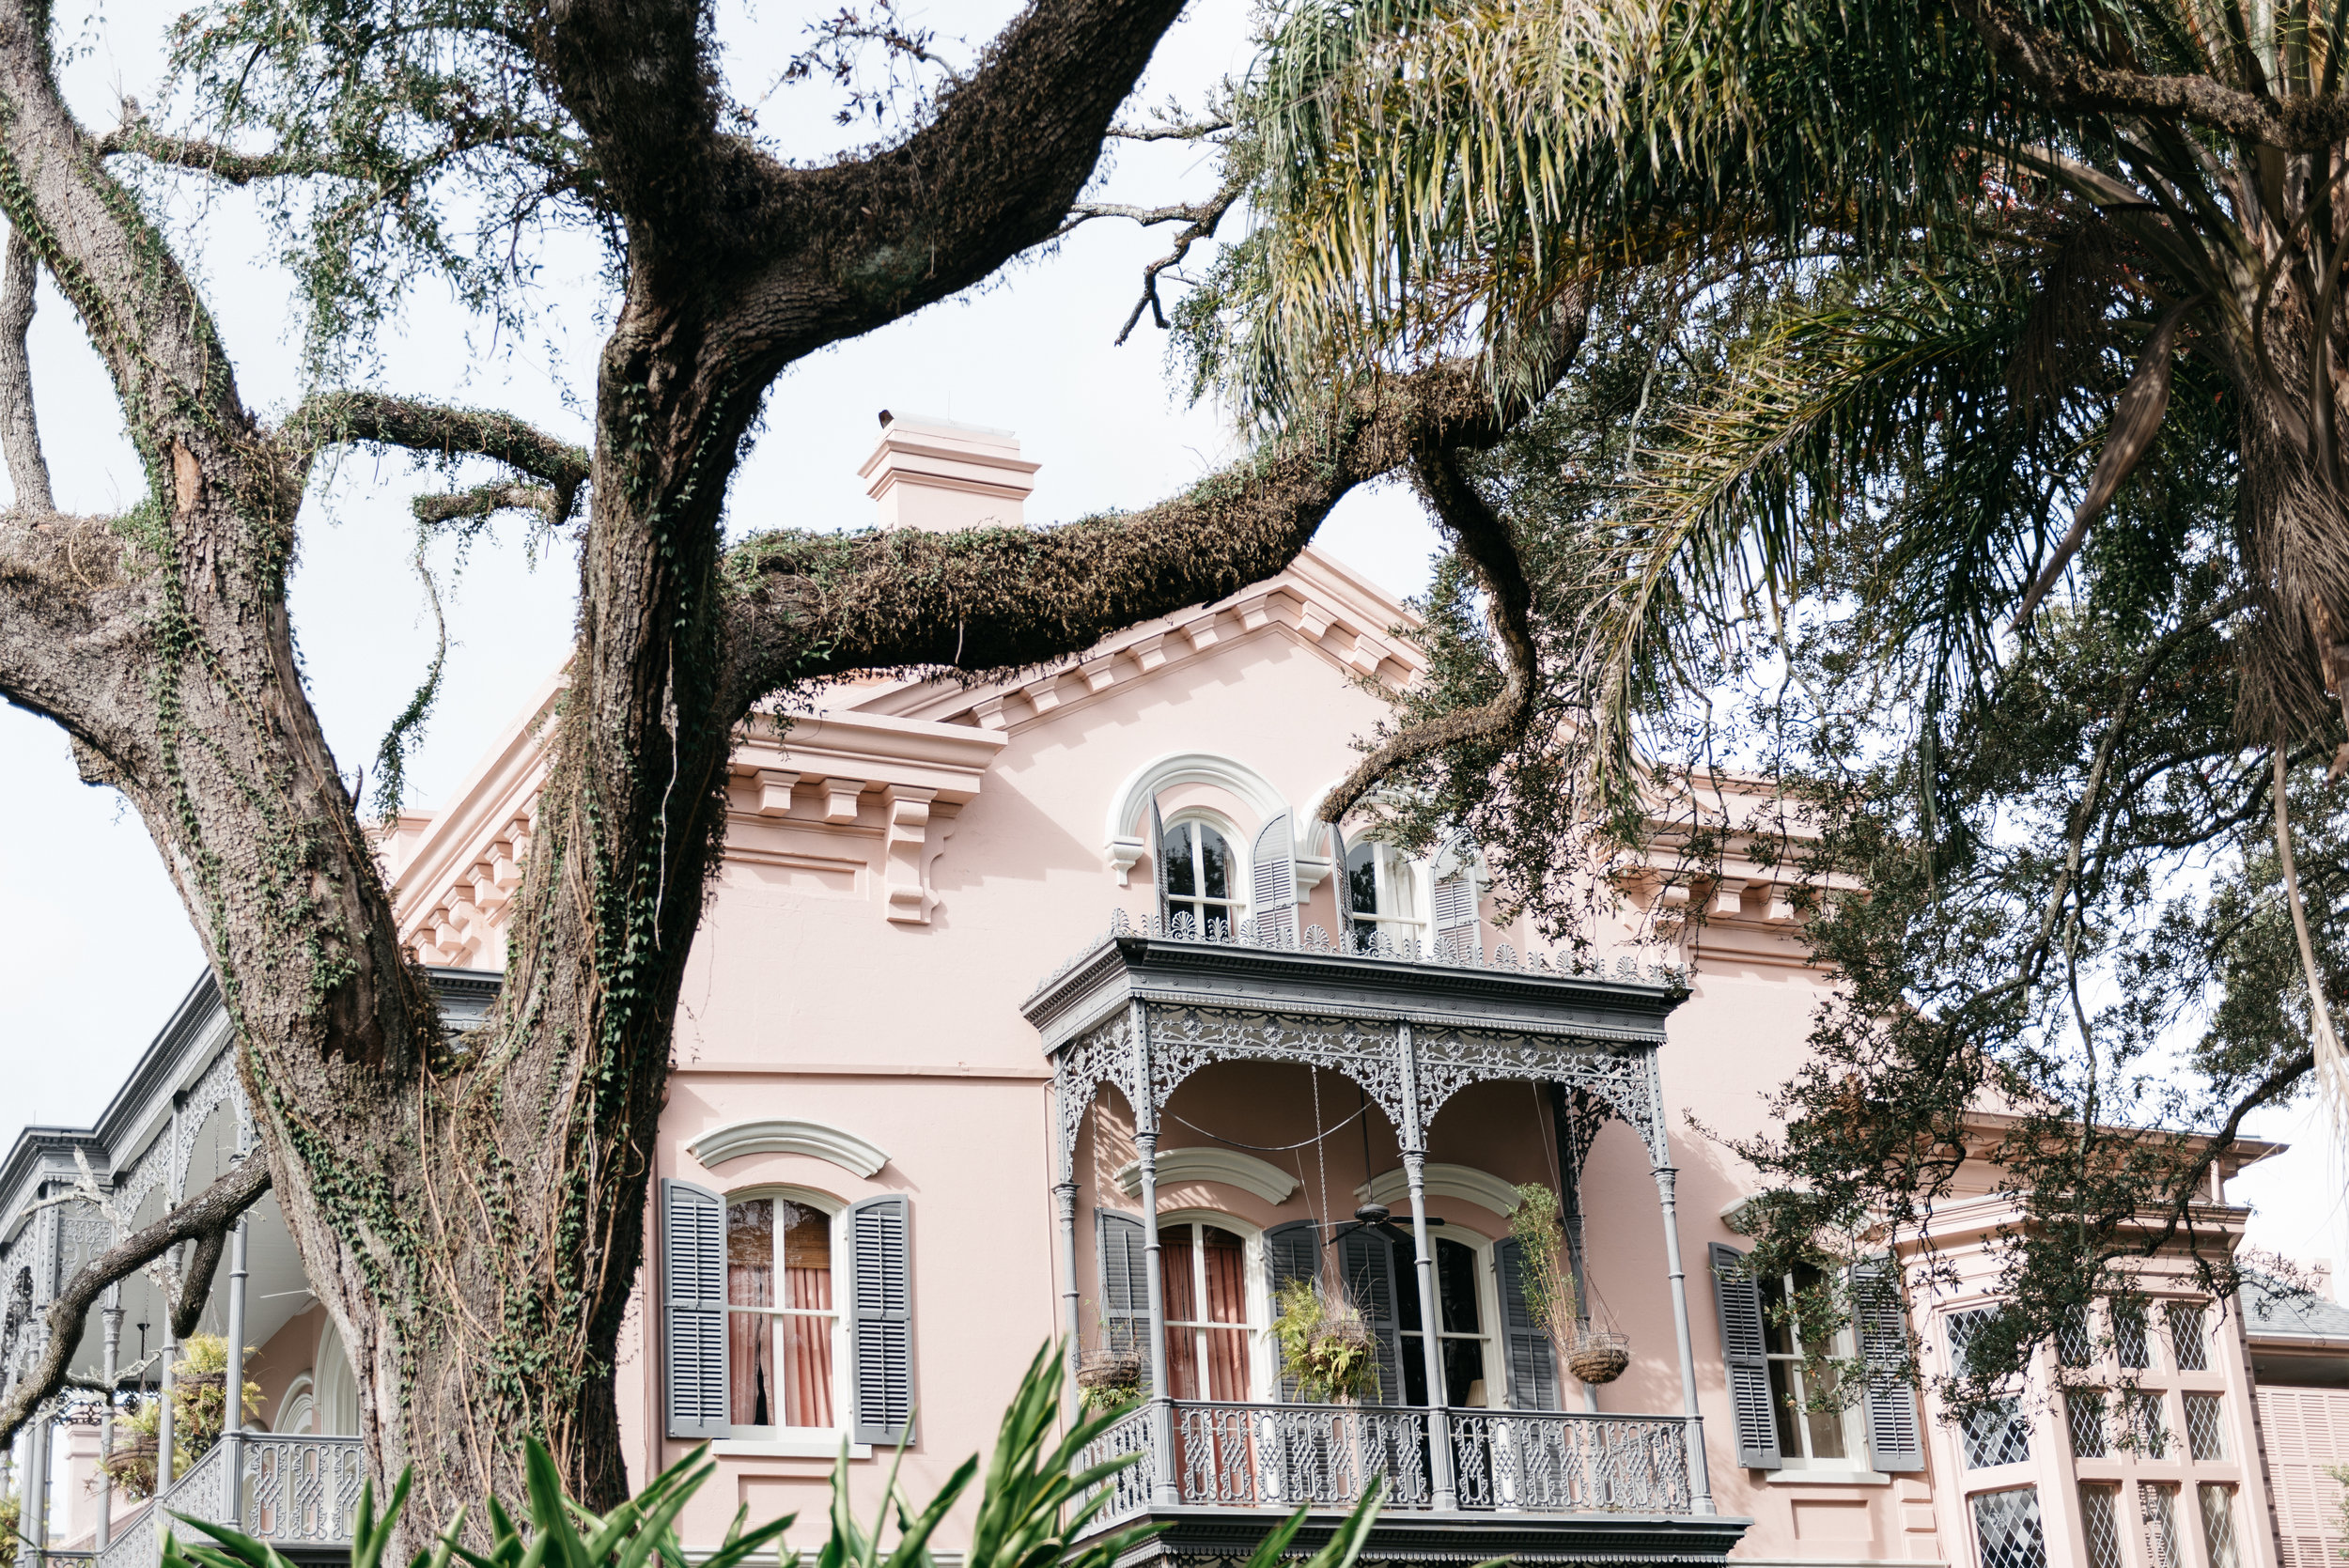 Walkthe garden district - Buy our Self-Guided Walking Tour